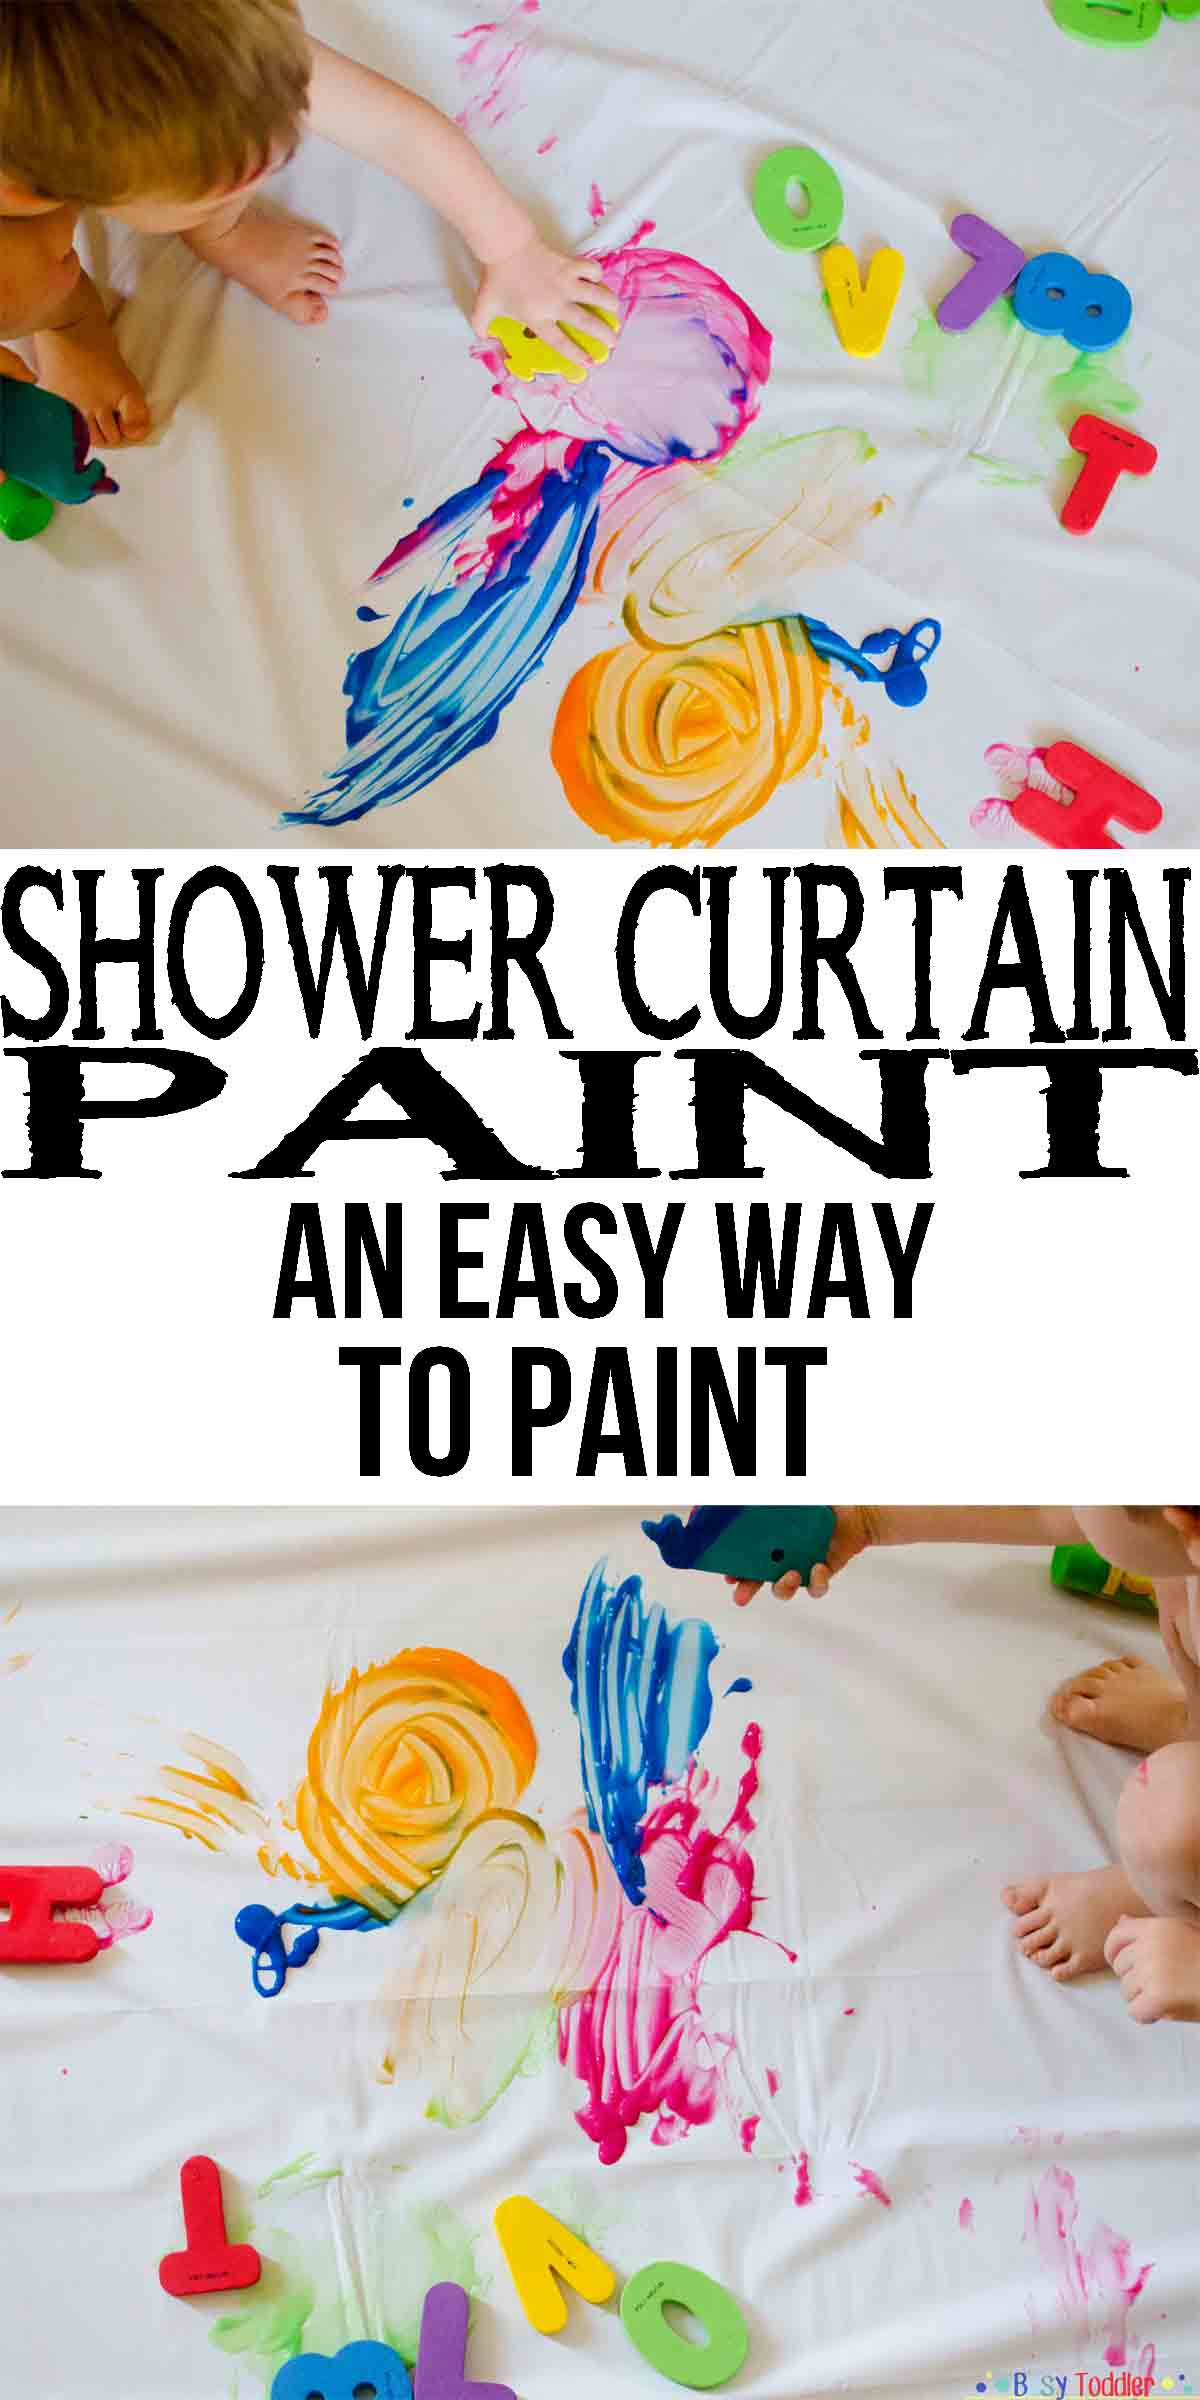 Shower Curtain Paint: an easy way to paint with a toddler